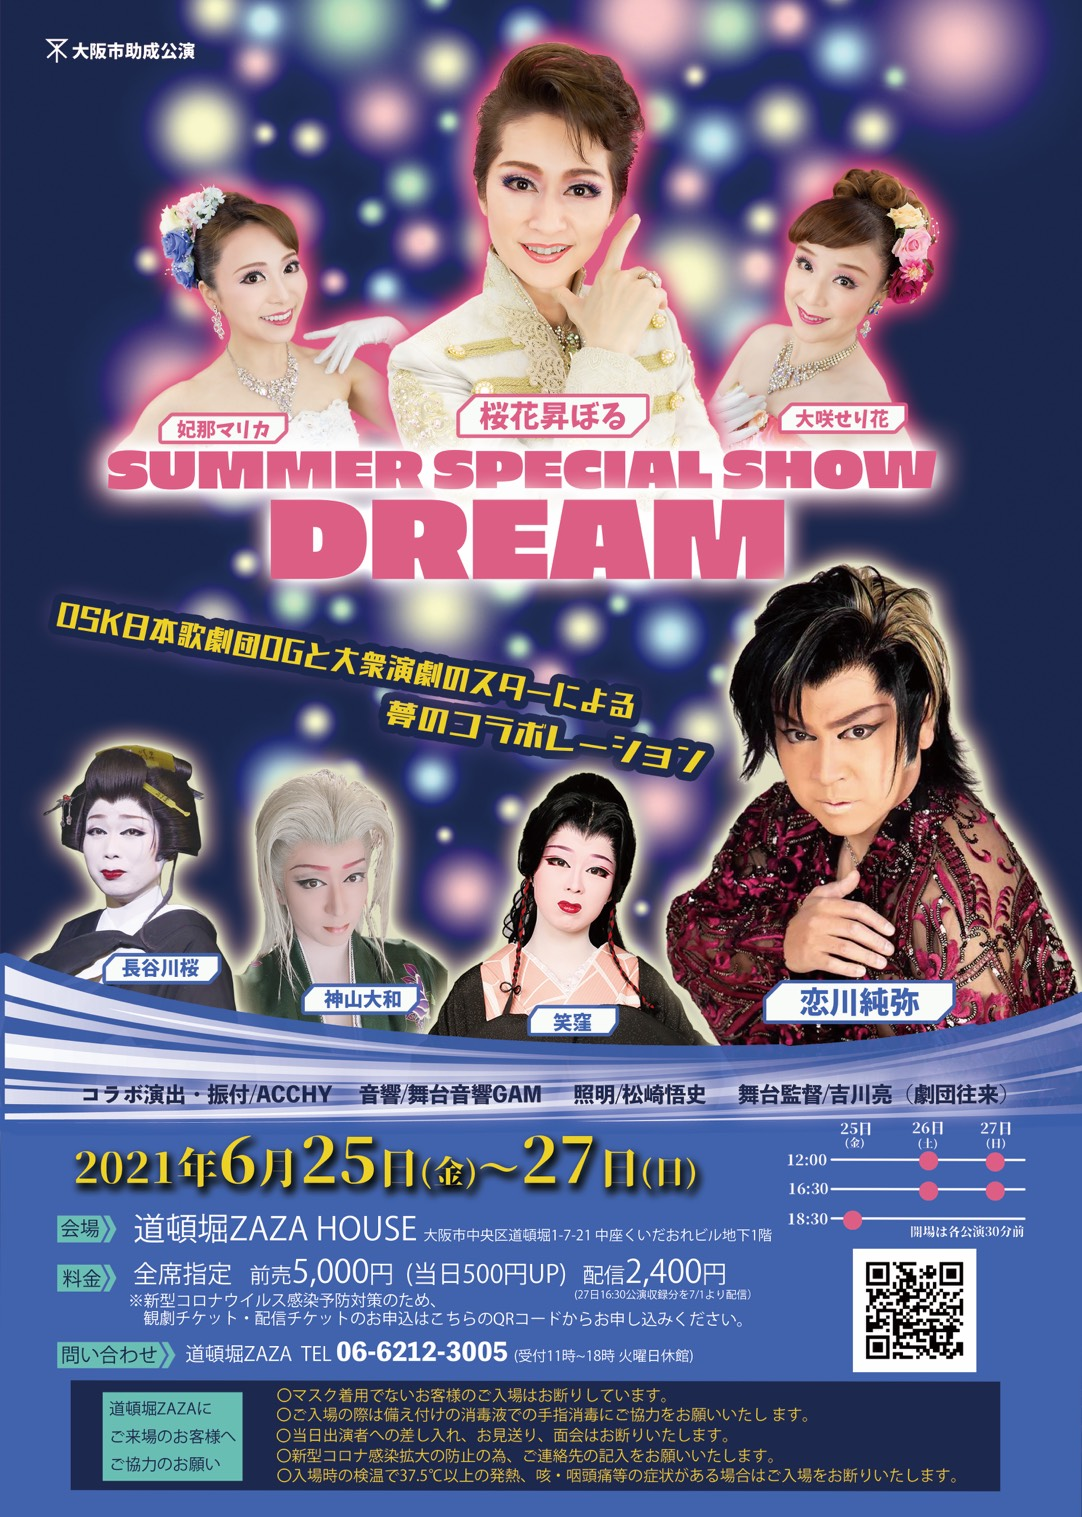 「SUMMER SPECIAL SHOW「DREAM」」の写真